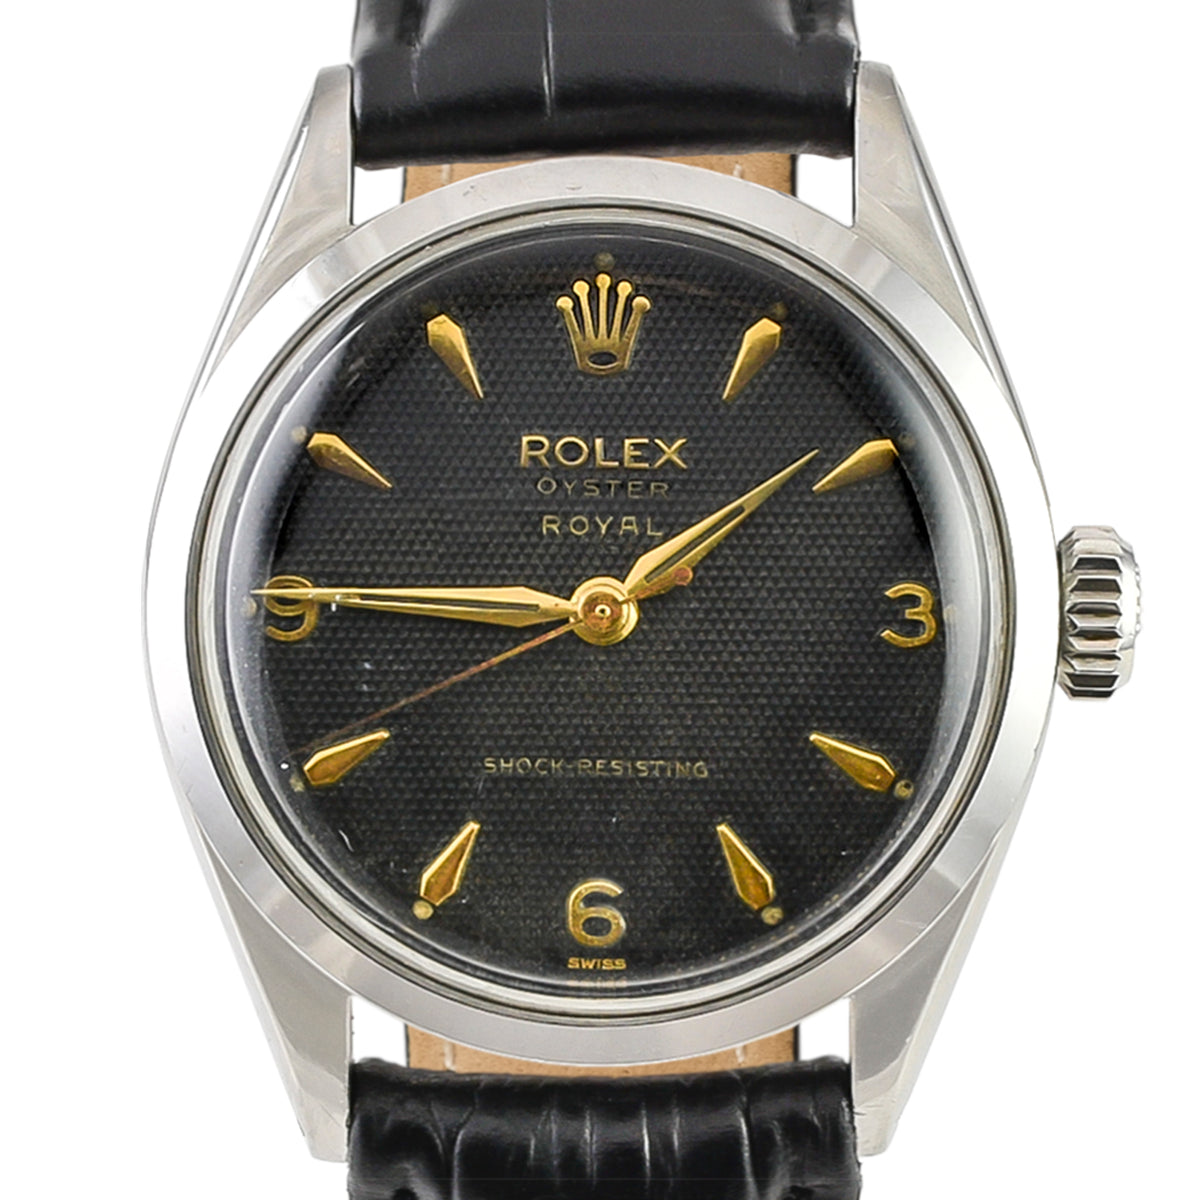 1950 Rolex Oyster Royal 6444